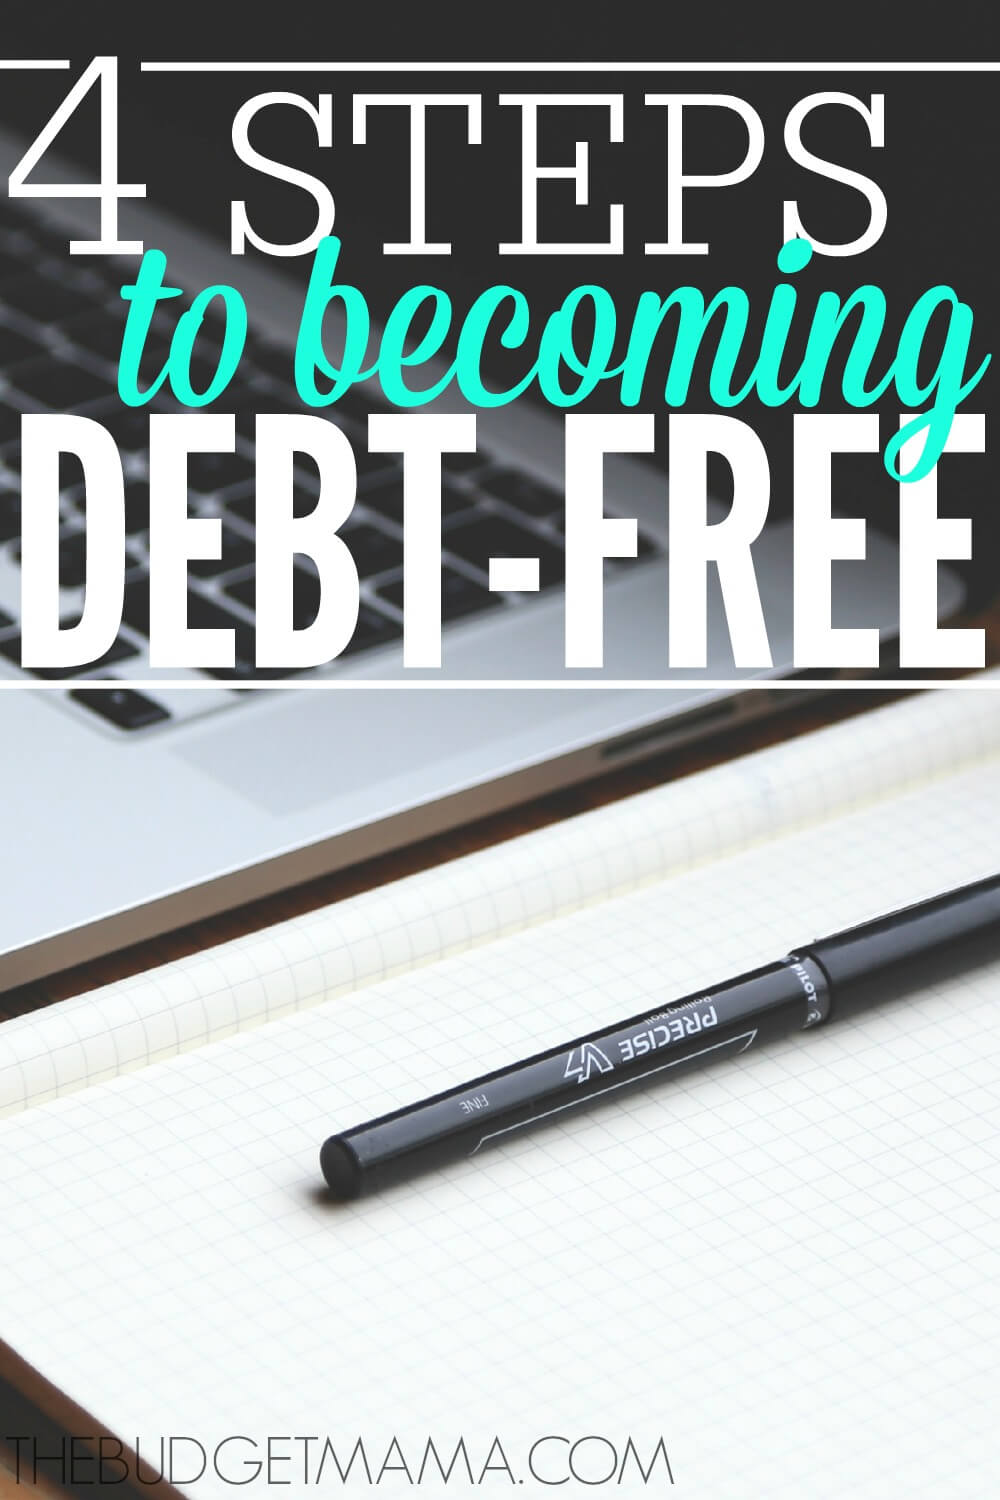 4 Steps To Success: Steps To Become Debt Free